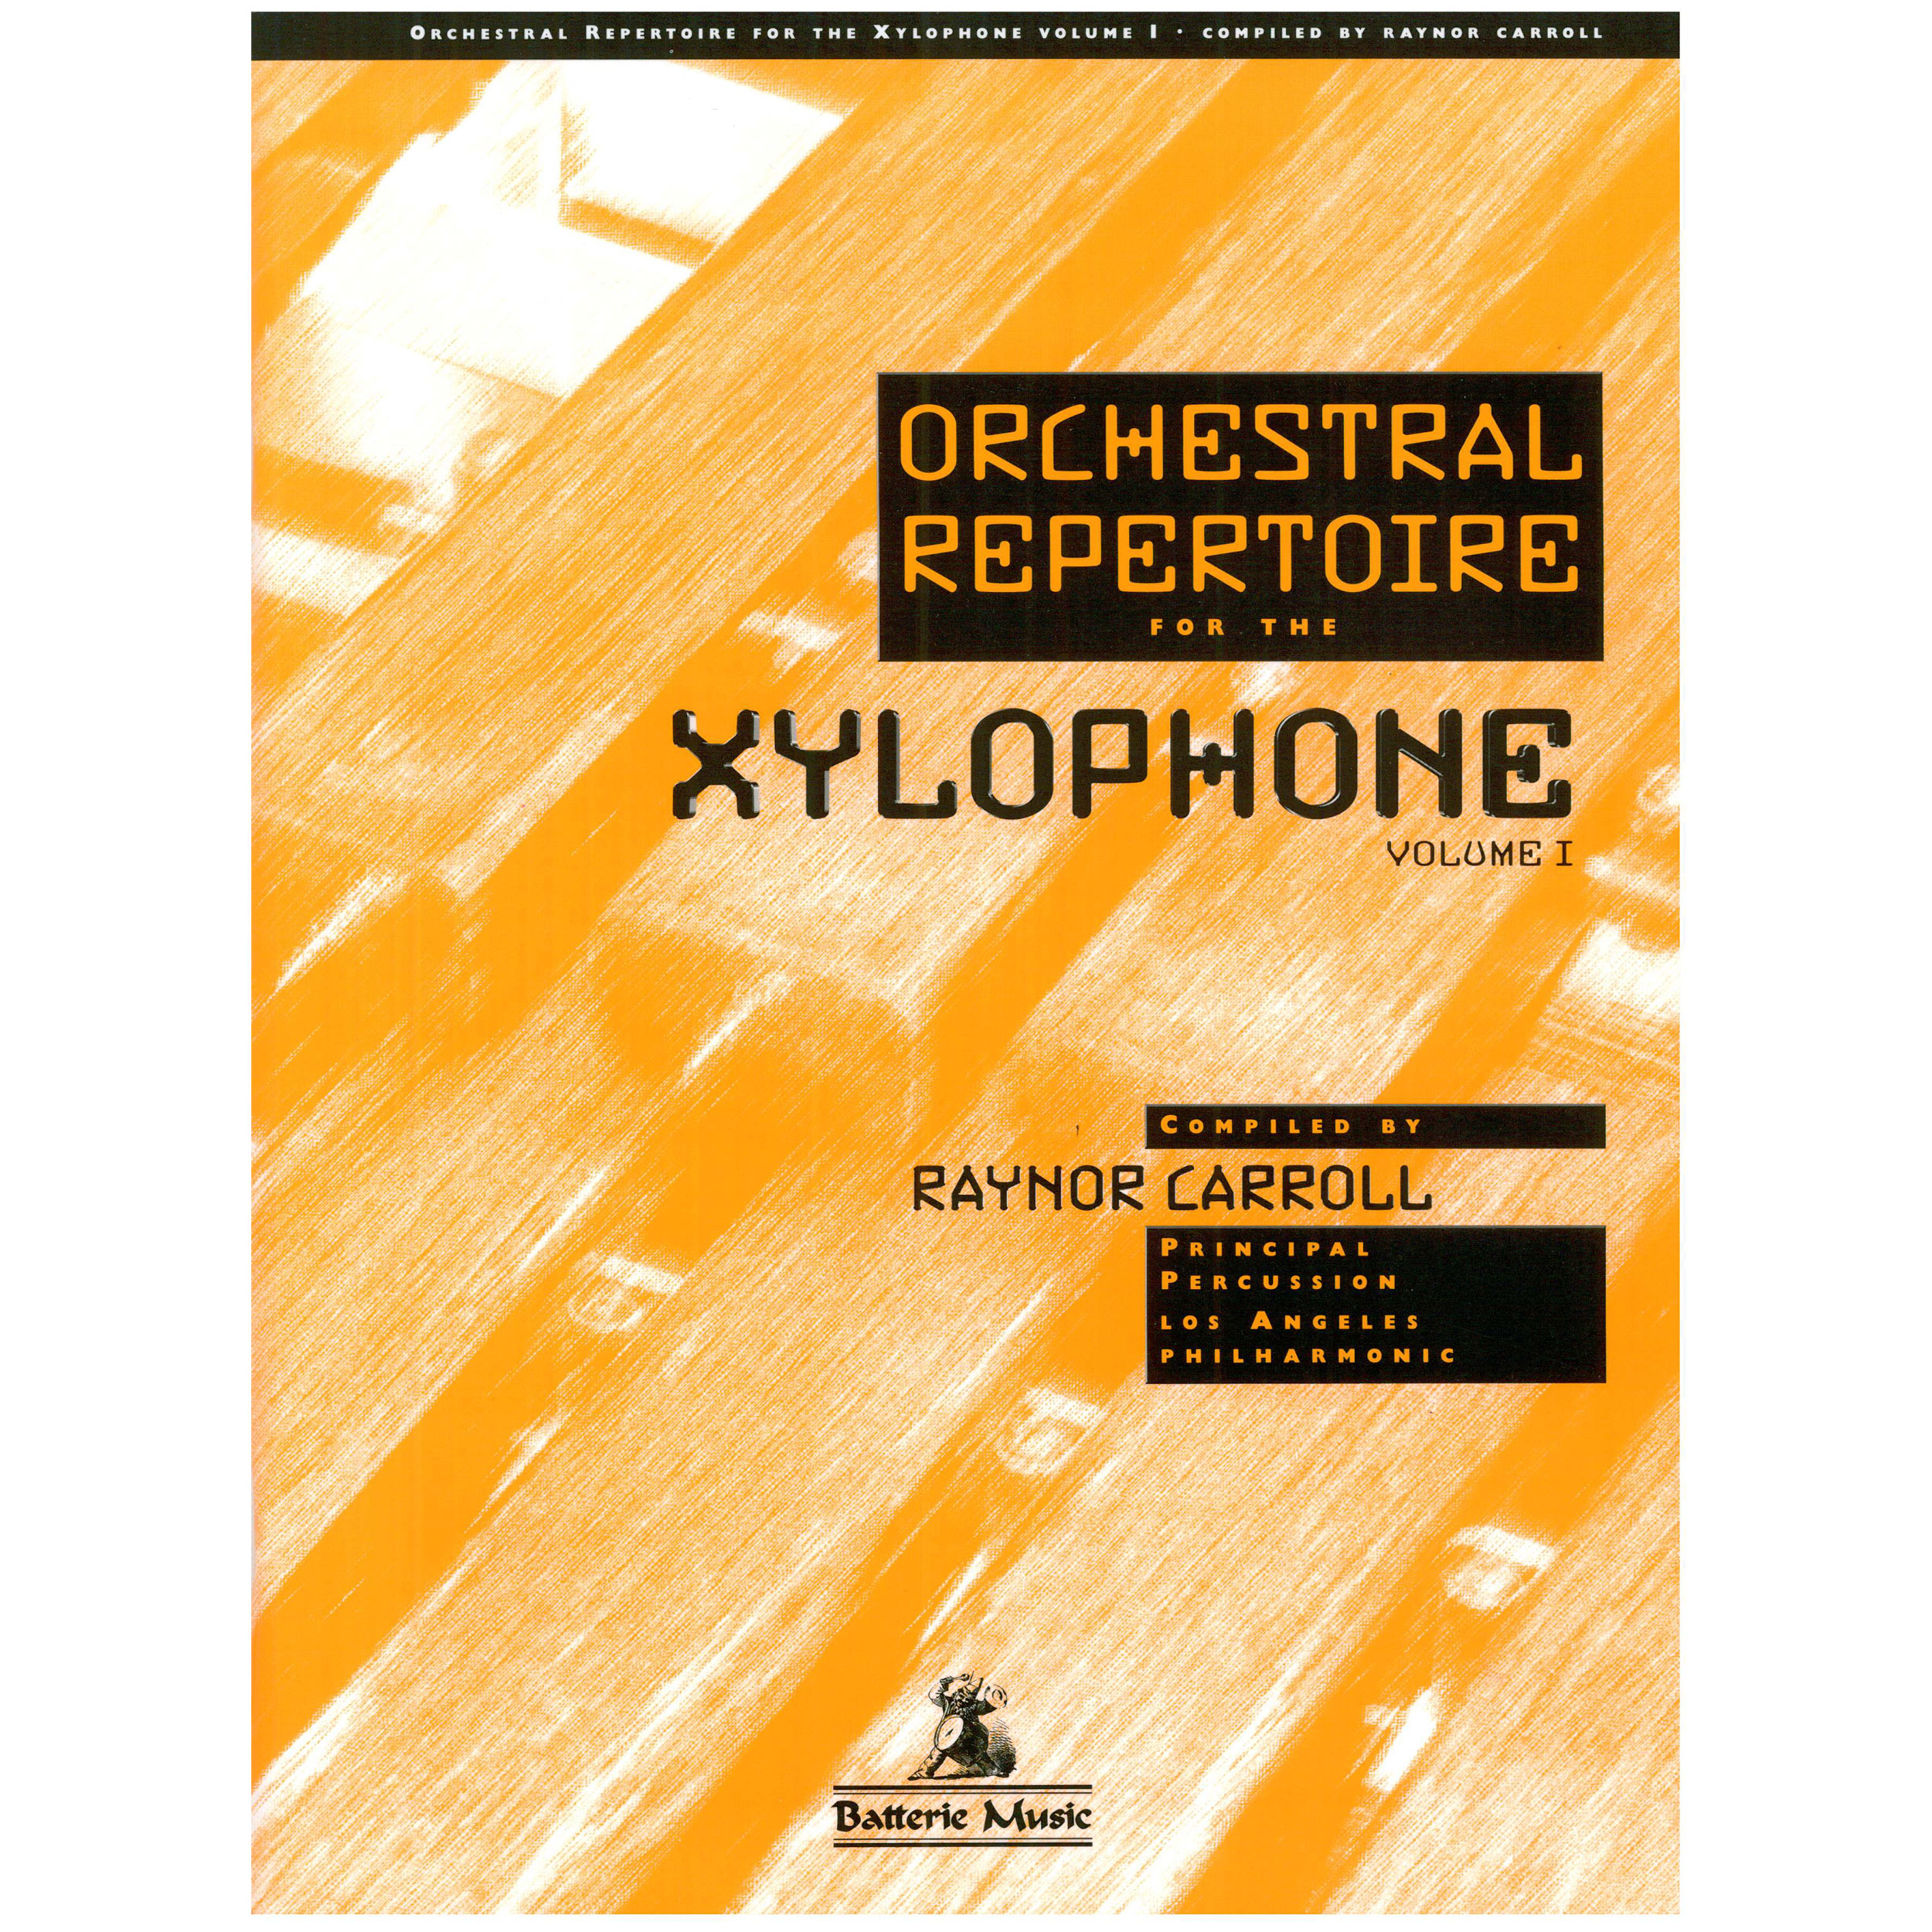 Orchestral Repertoire for the Xylophone - Vol. 1 by Raynor Carroll